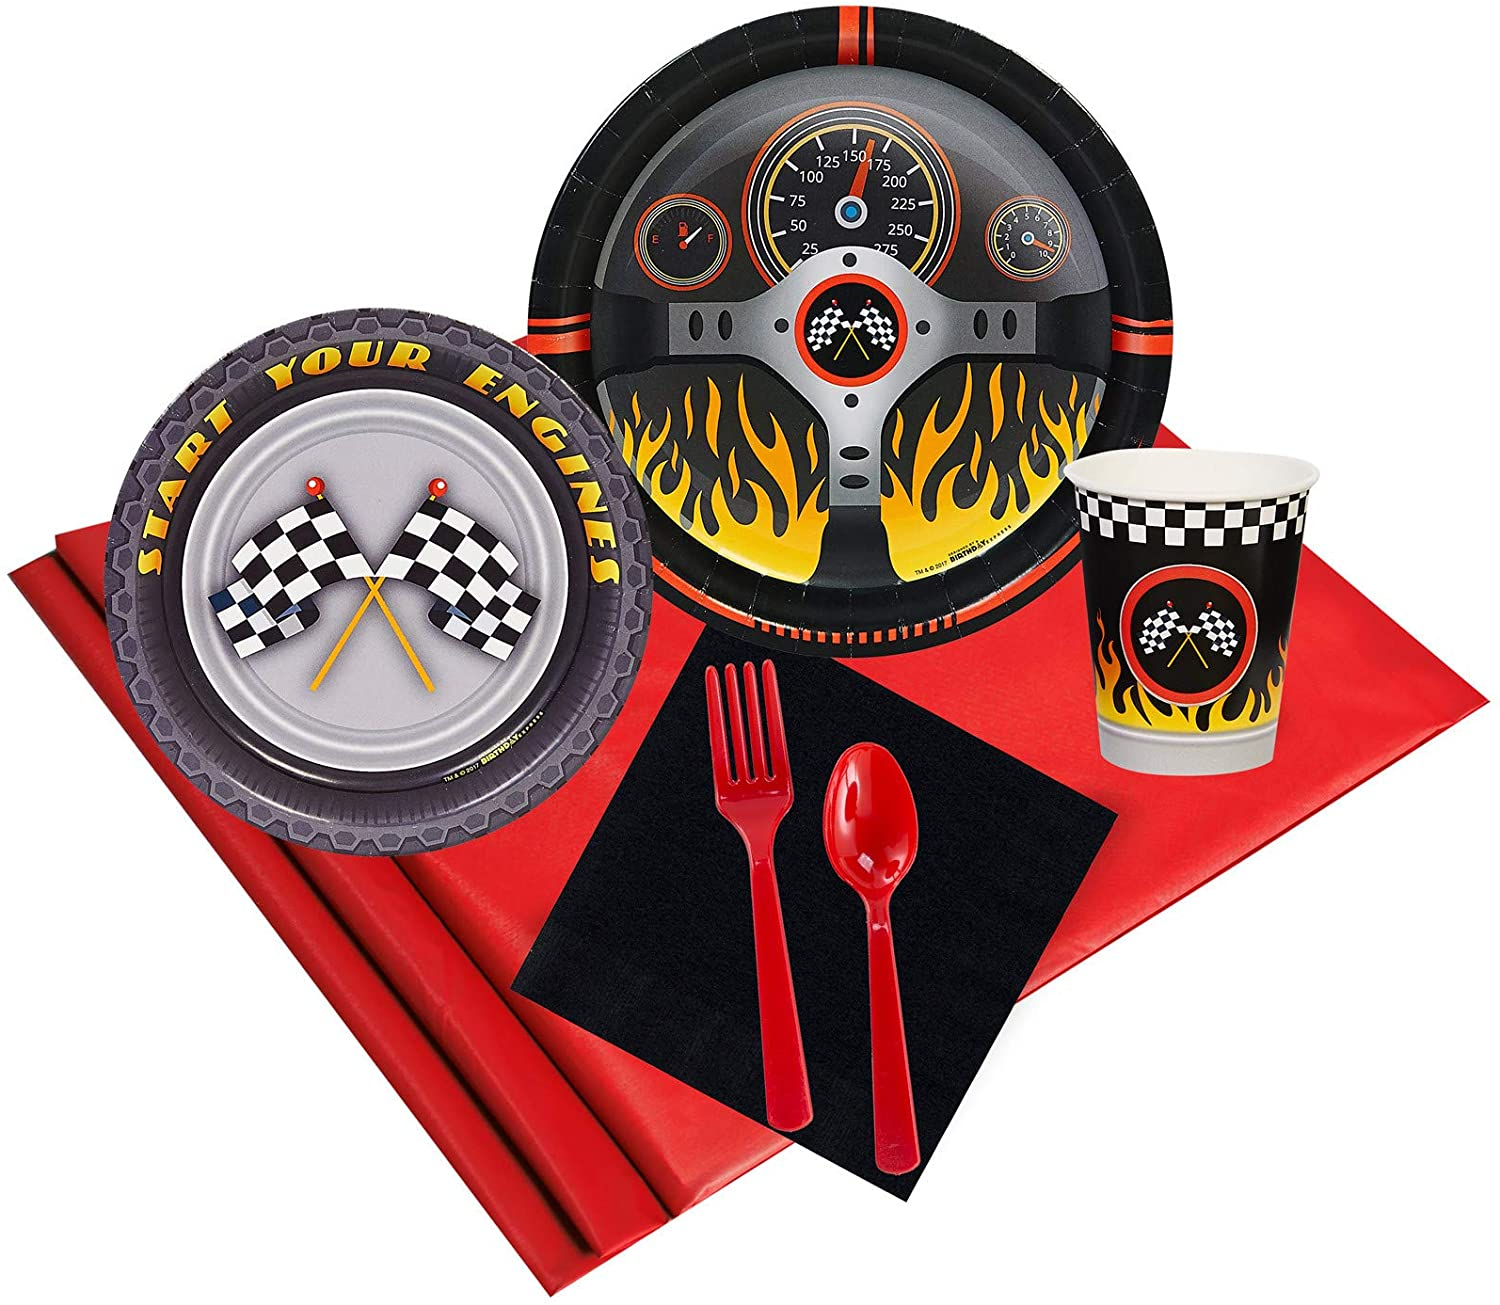 BirthdayExpress Racecar Racing Party Supplies - Party Pack for 16 Guests